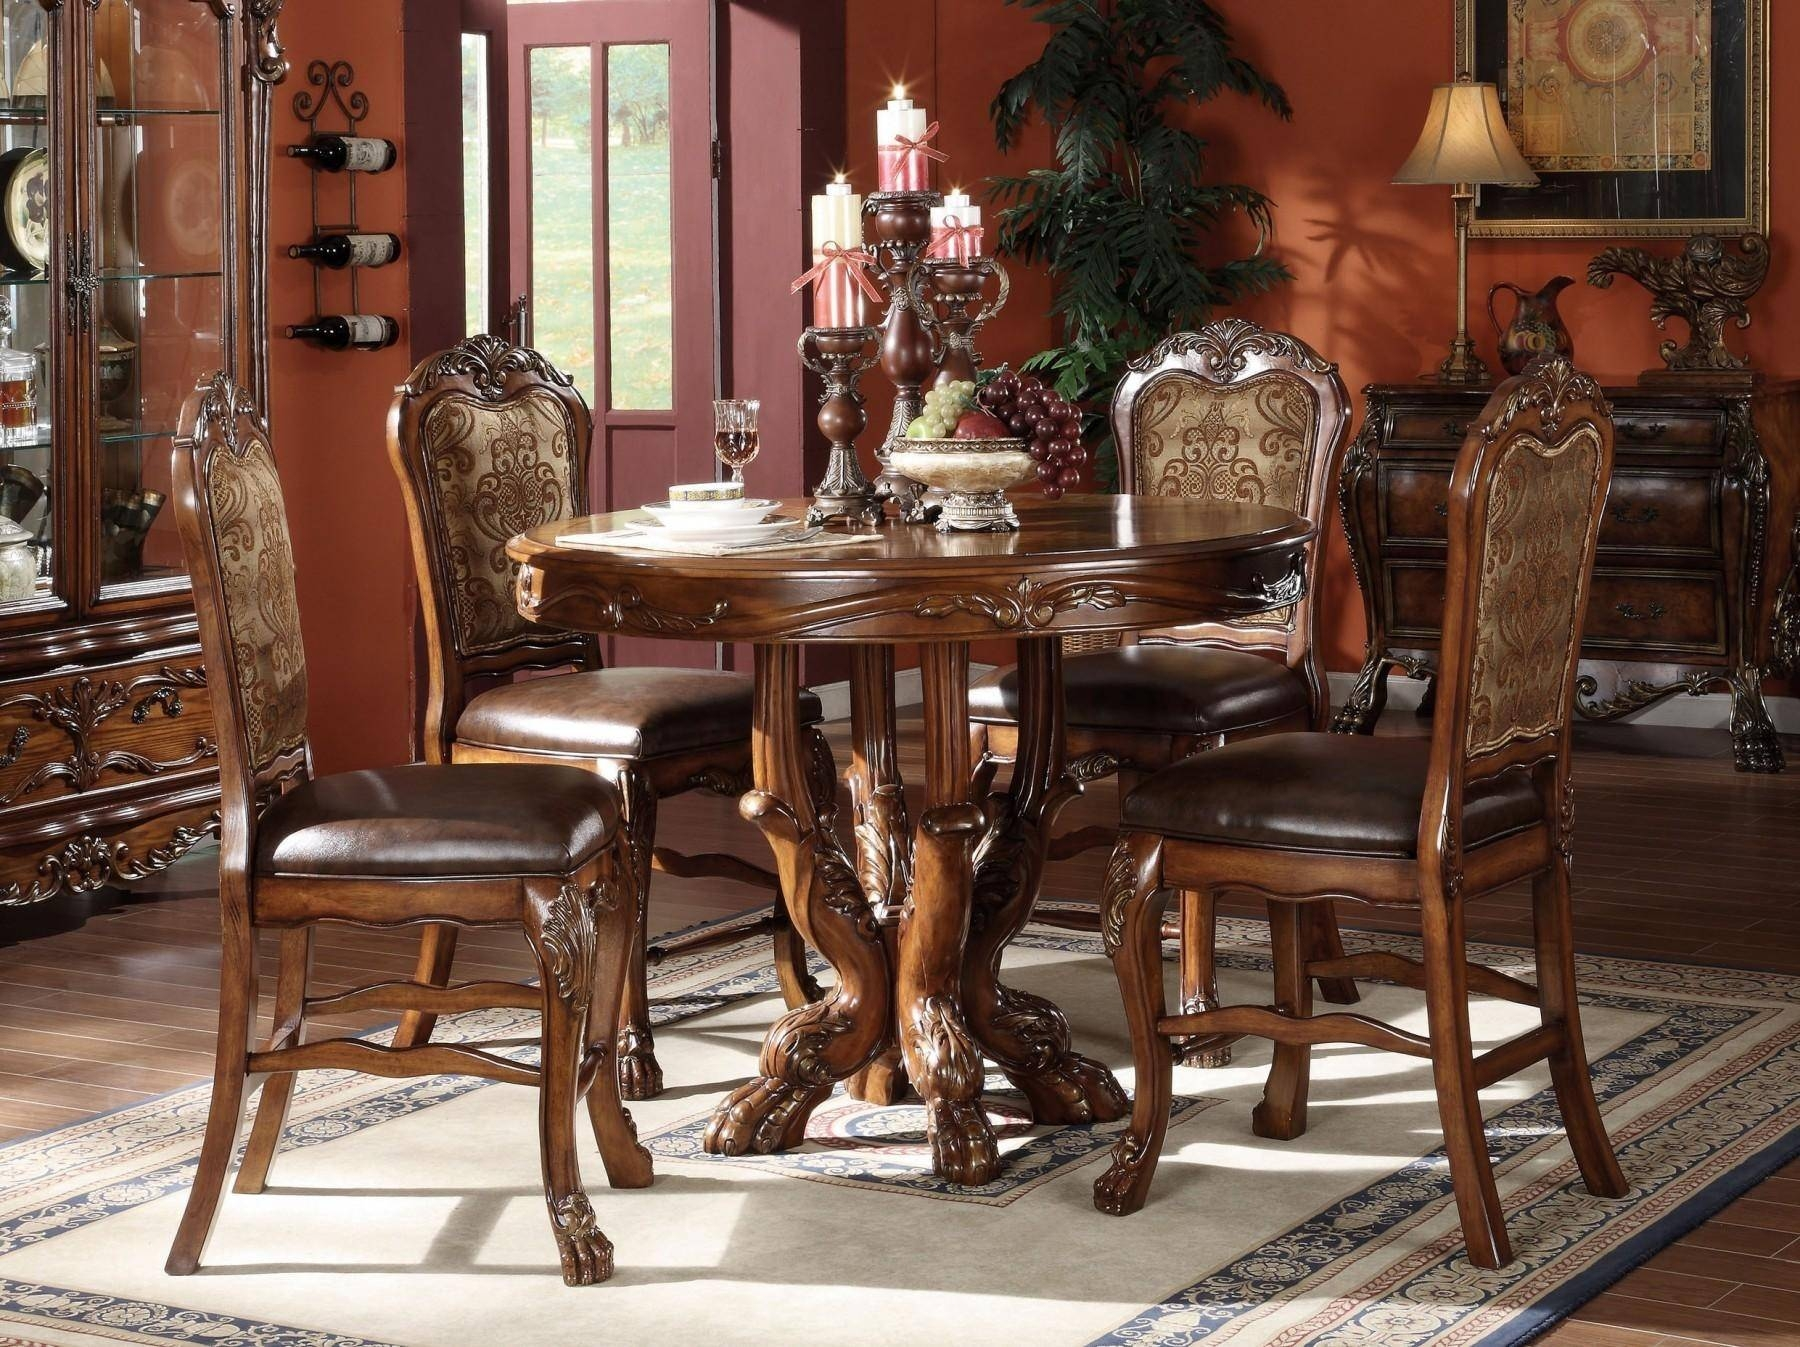 acme furniture cherry oak counter height dining room set 5pcs 12160